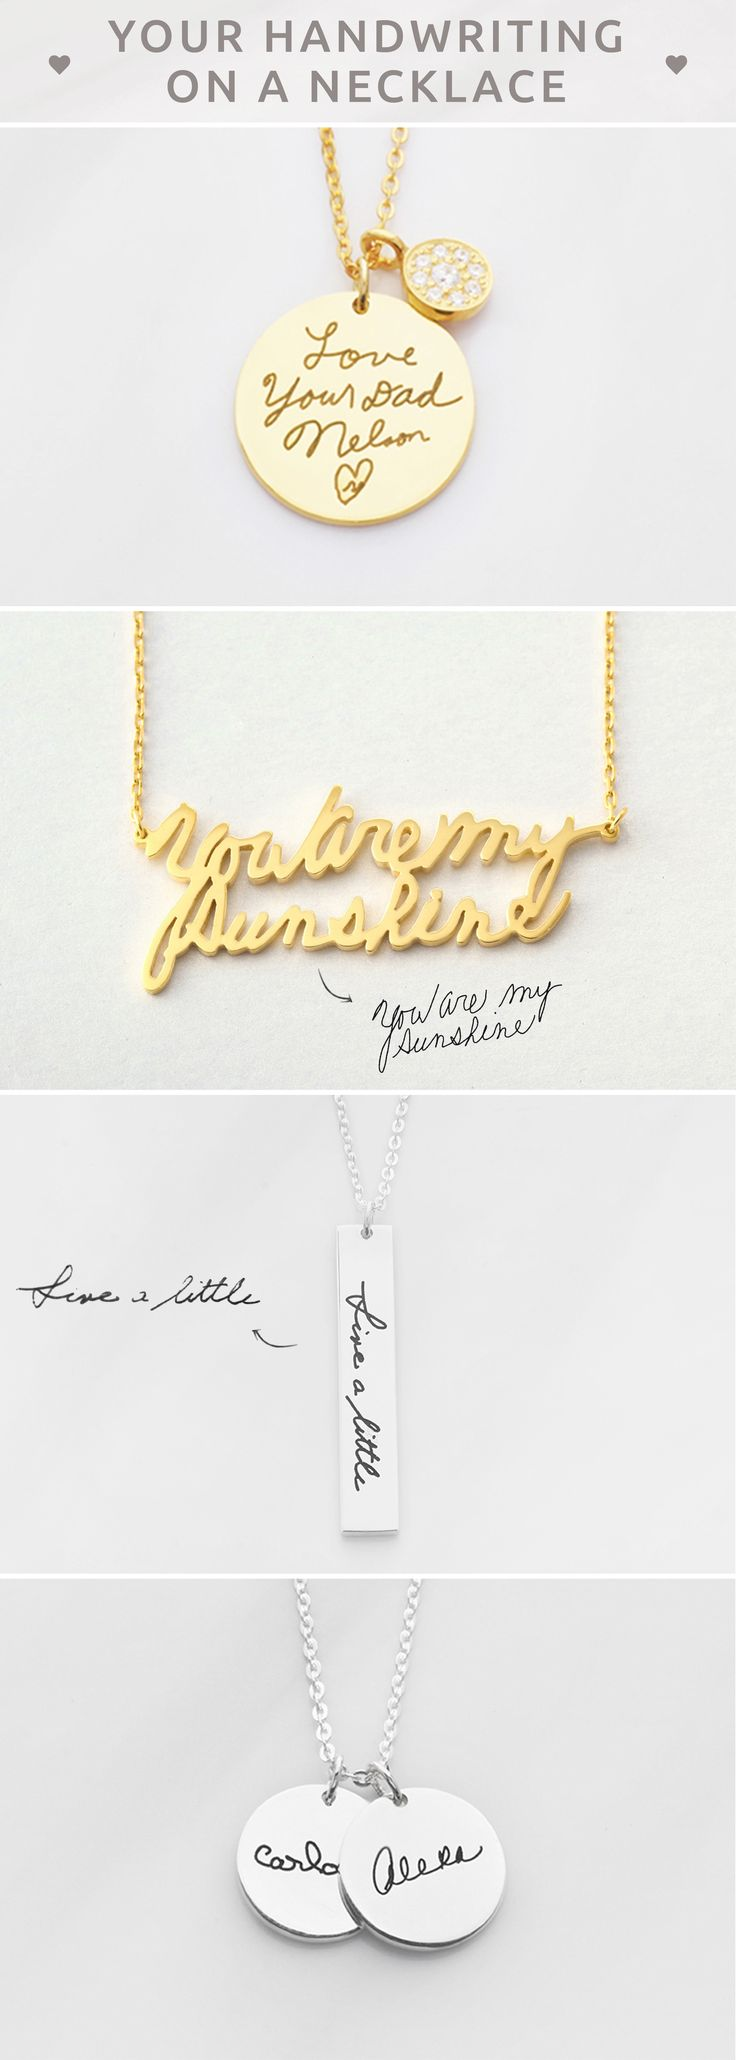 DAINTY Handwriting Necklace • Actual handwriting necklace • Personalized handwritten necklace • Personalized Signature Necklace • Engraved name necklace • Memorial signature jewelry • Custom Handwriting Jewelry Sterling Silver • Memorial Necklace • Minimalist jewelry • Memorial jewelry for wedding • Christmas gifts • christmas presents for mother in law • personalised engagement gifts for engaged couple • unique teacher gifts • birthday gift ideas for mom • bff gifts • unique gifts for mom